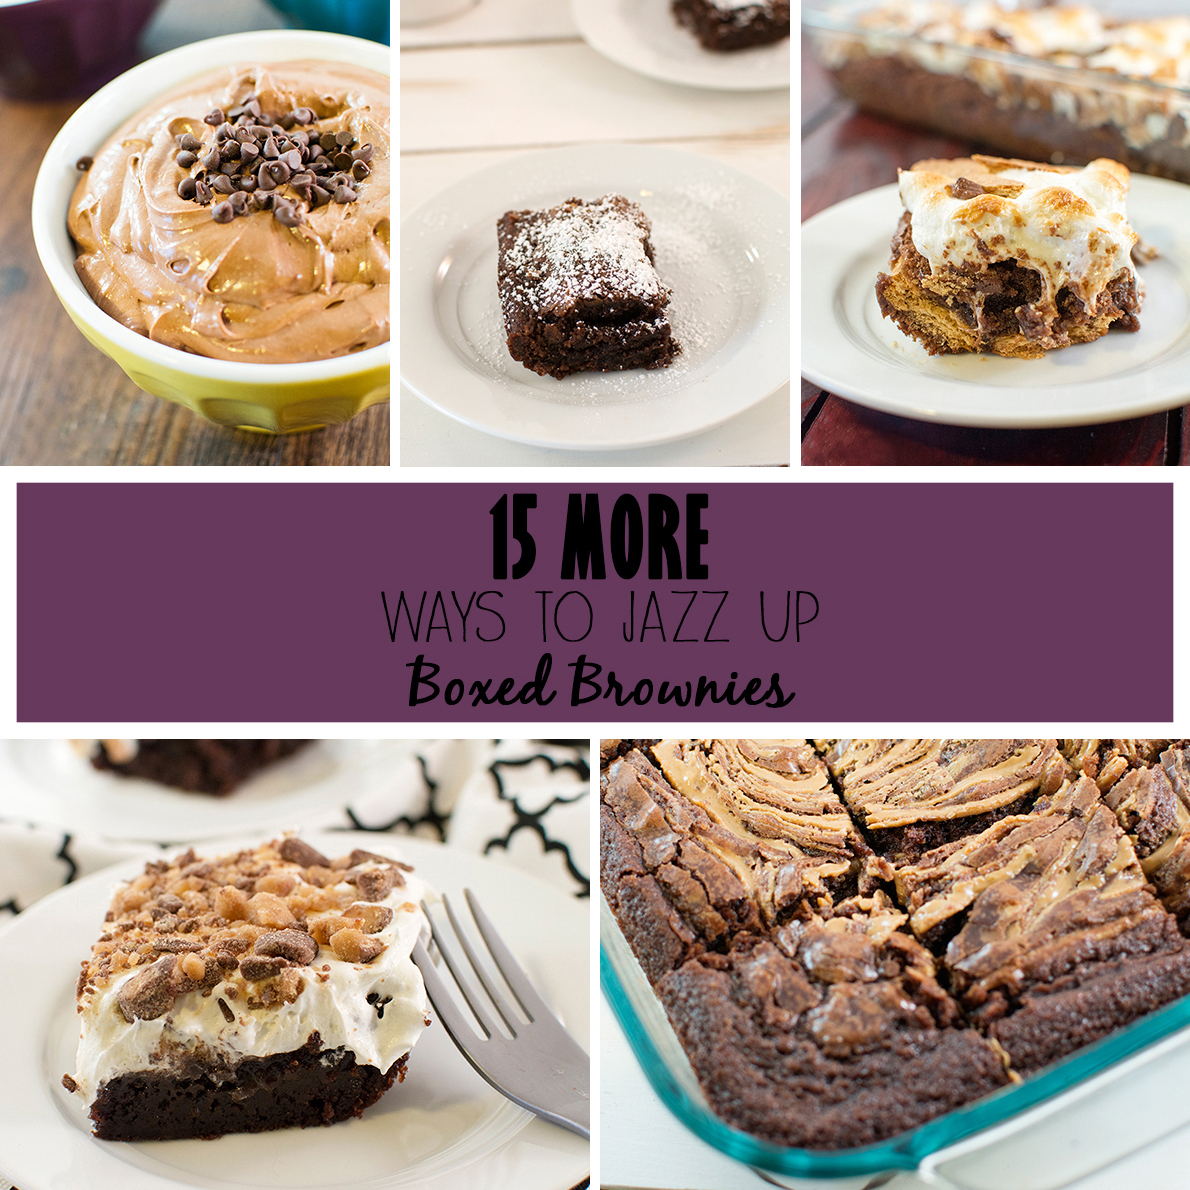 15 MORE ways to jazz up boxed brownies